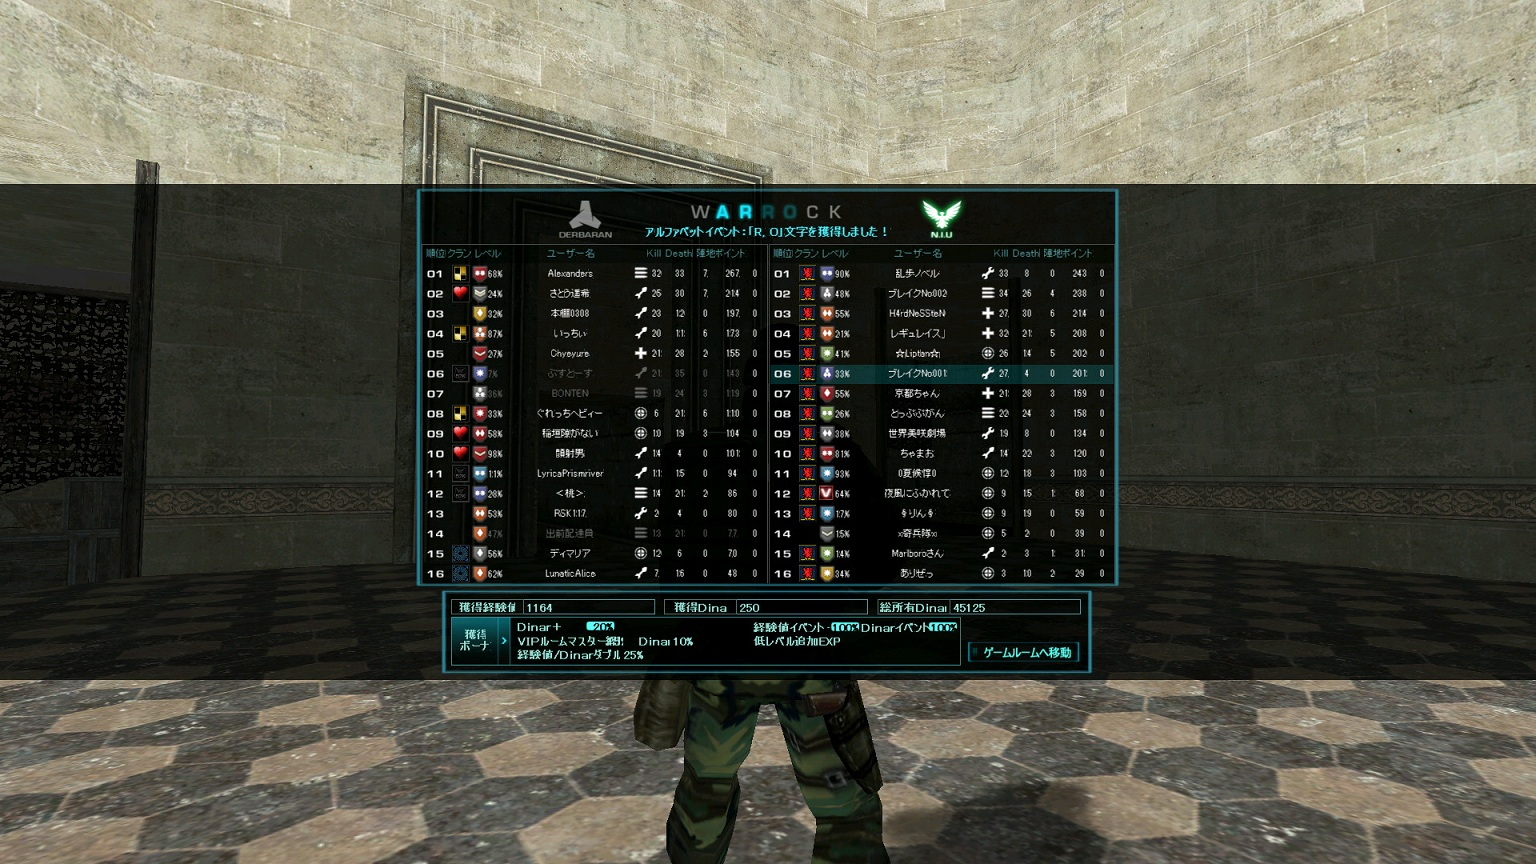 screenshot_309.jpg